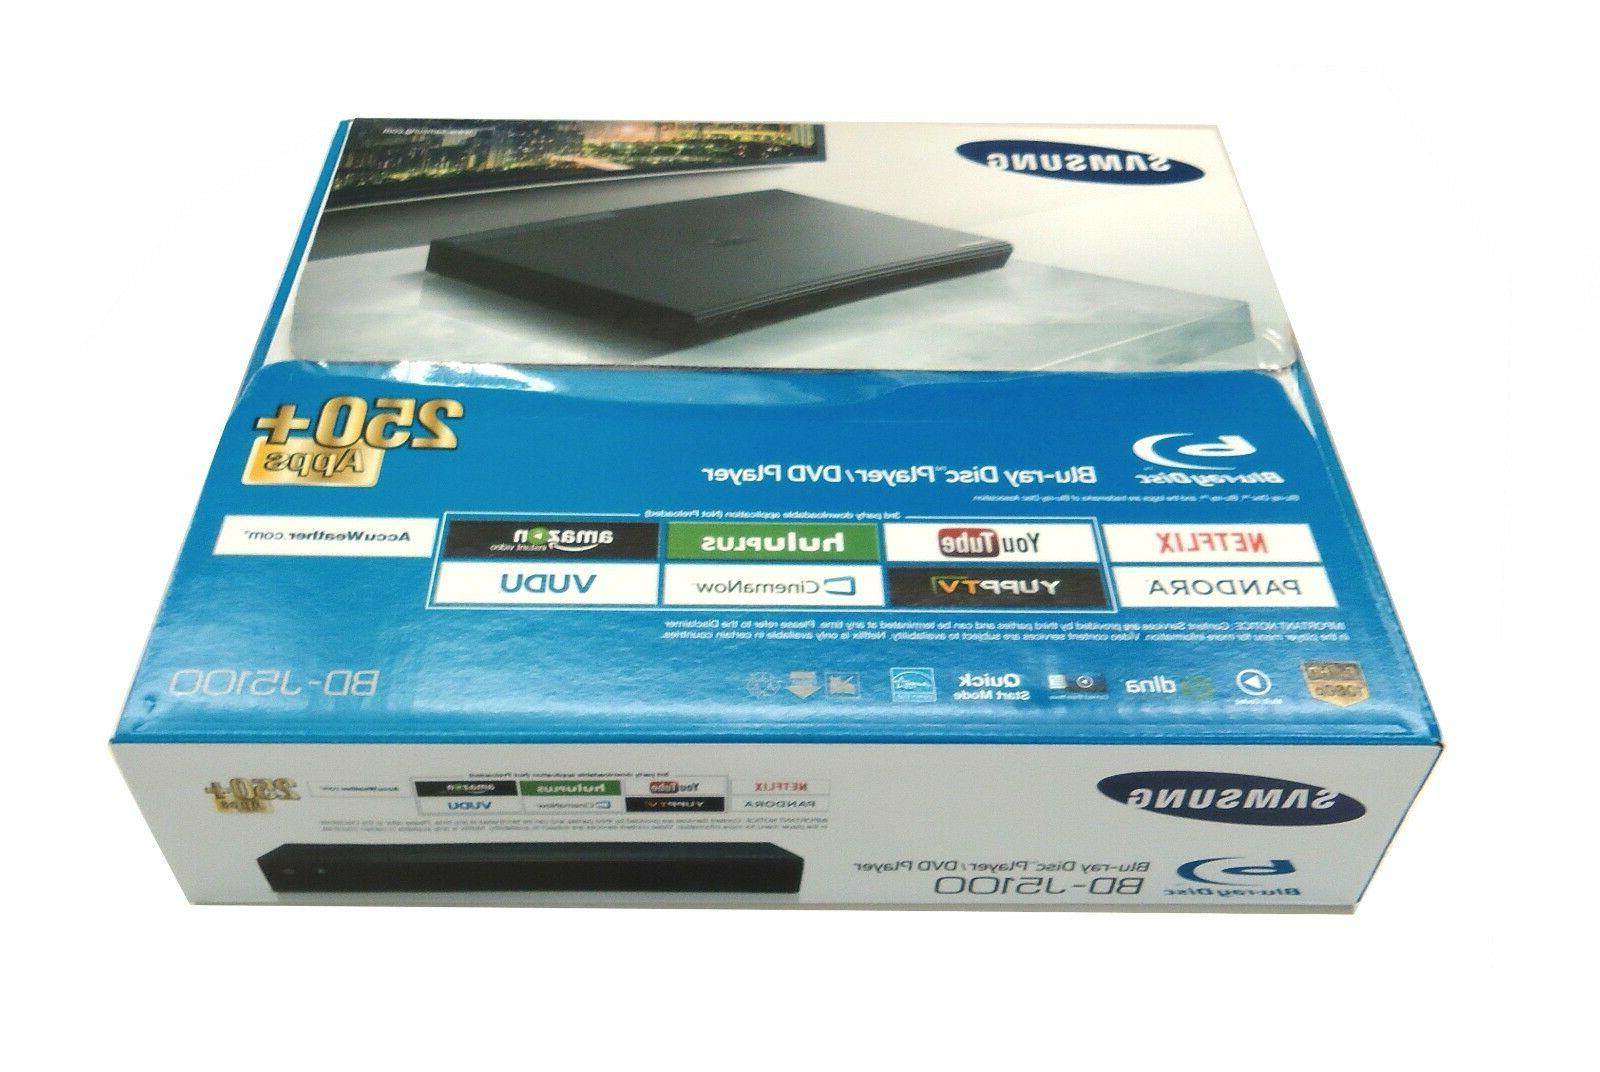 Samsung Curved Smart DVD Blu Ray Player w/ Built-In LAN & Op